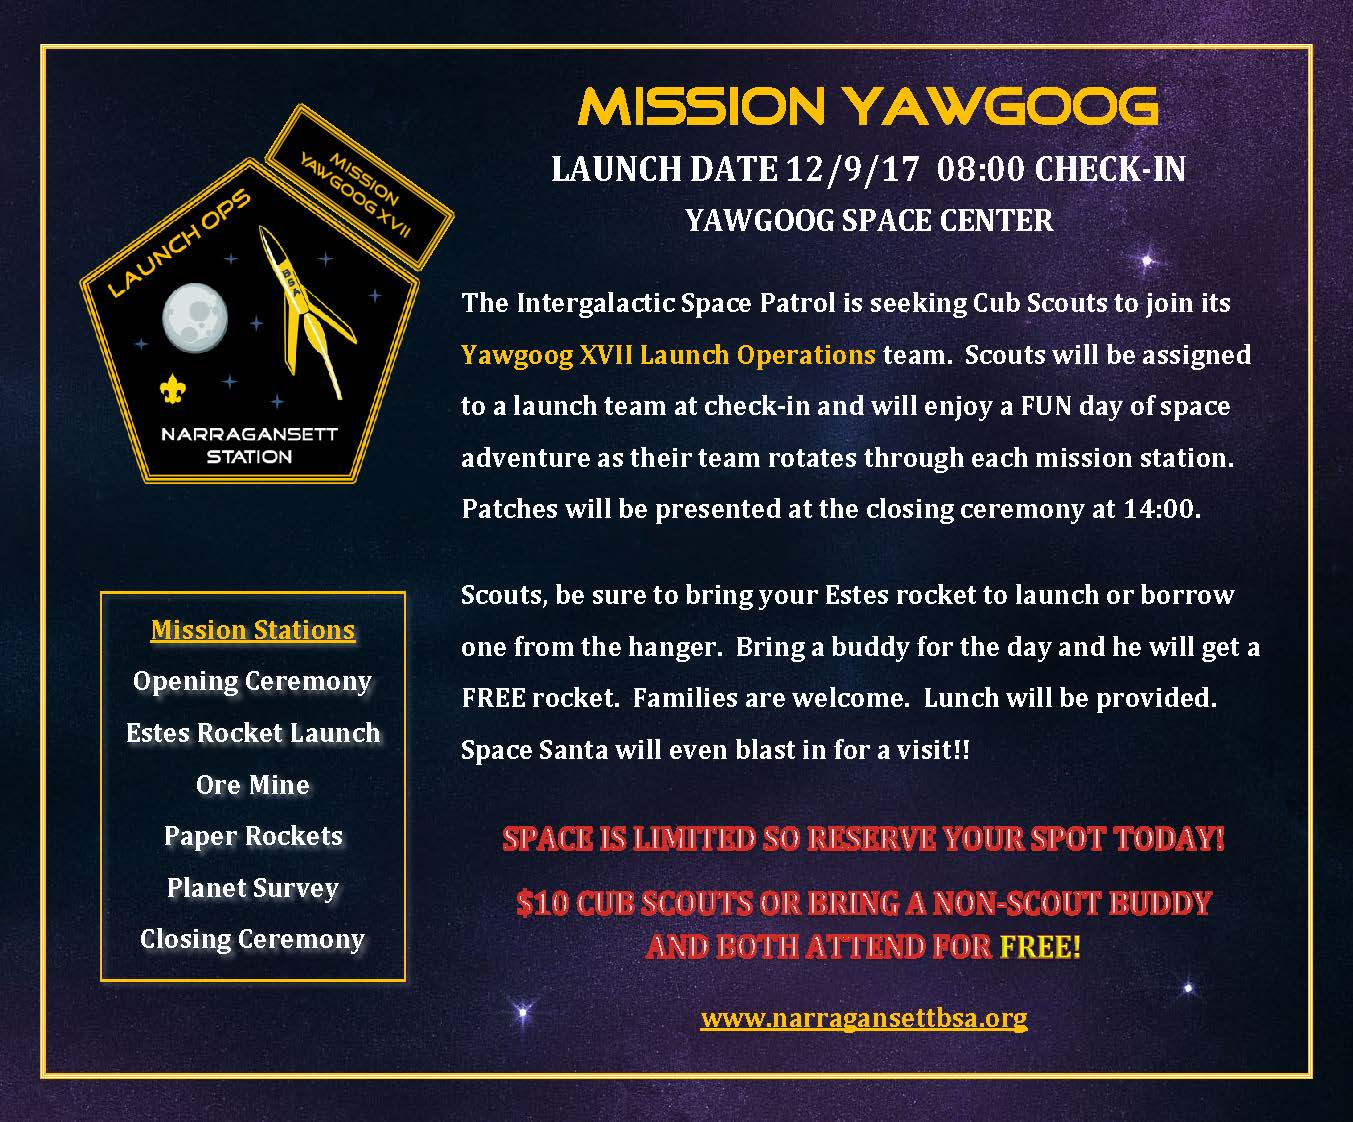 Mission Yawgoog: Rocket Academy on medical checklist, medical papers, medical backgrounds, medical logo, medical charts, medical reports, medical history, medical paperwork, medical insurance, medical documentation, medical signs, medical flyers, medical schedule, medical treatment, medical privacy policy, medical records, medical questionnaire, medical documents, medical files, medical information,